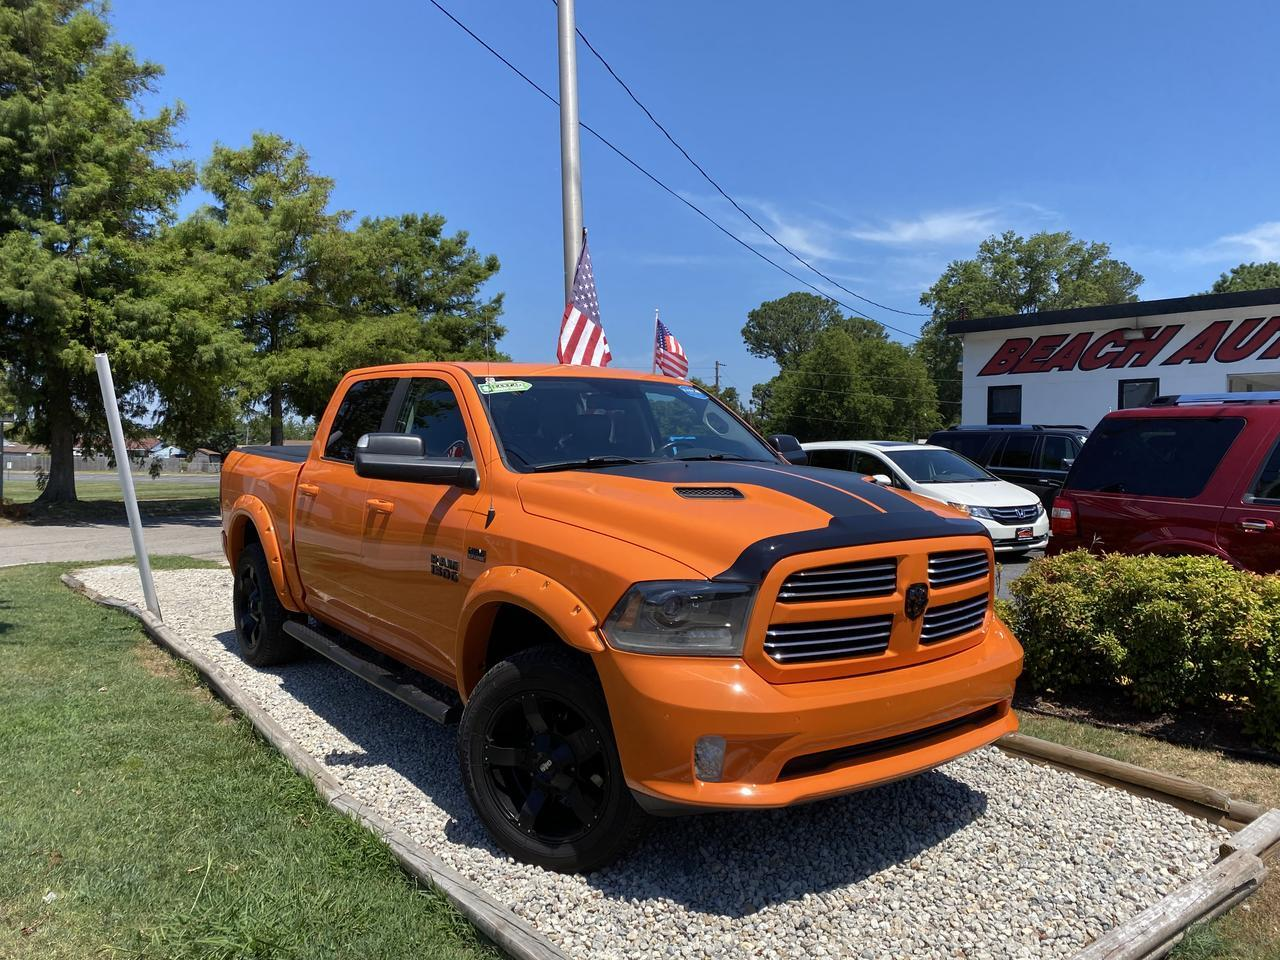 2015 DODGE RAM SPORT CREW CAB 4X4, WARRANTY, LEATHER, NAV, HEATED SEATS, SUNROOF, CLEAN CARFAX! Norfolk VA